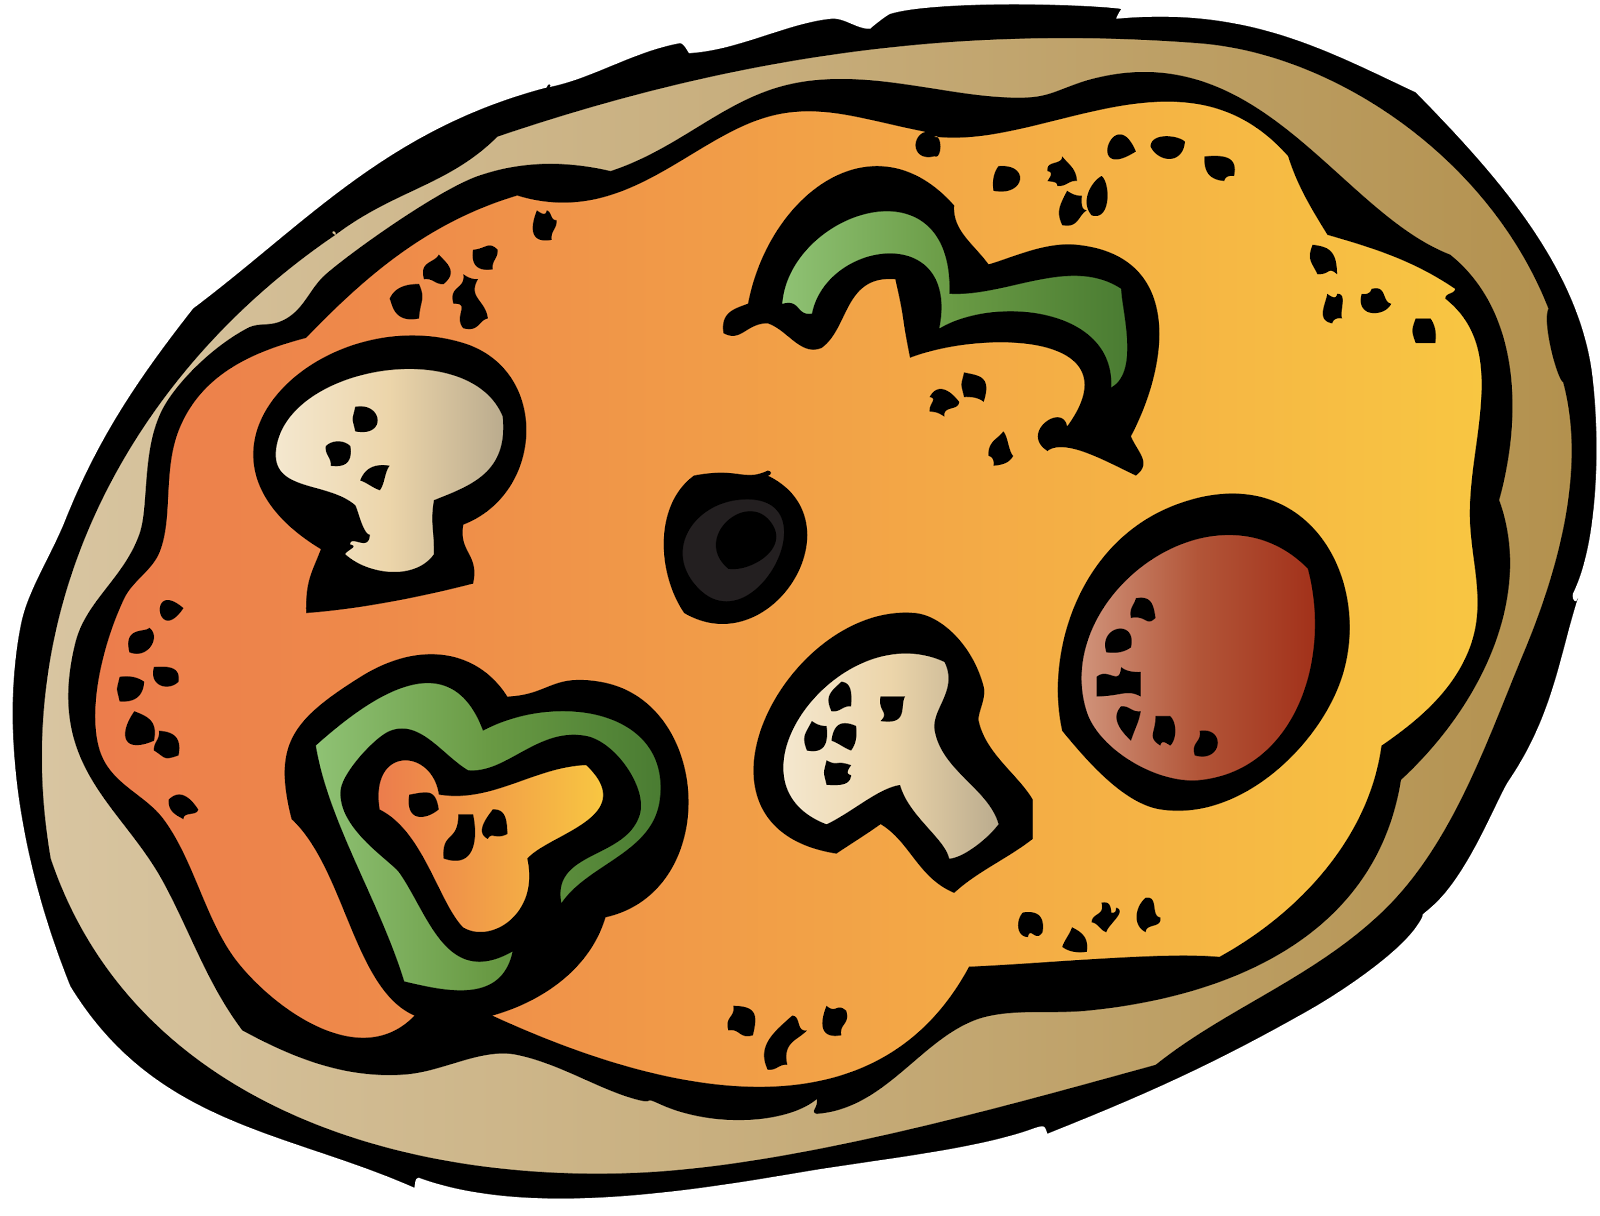 Maestra roque donations to. Heart clipart pizza